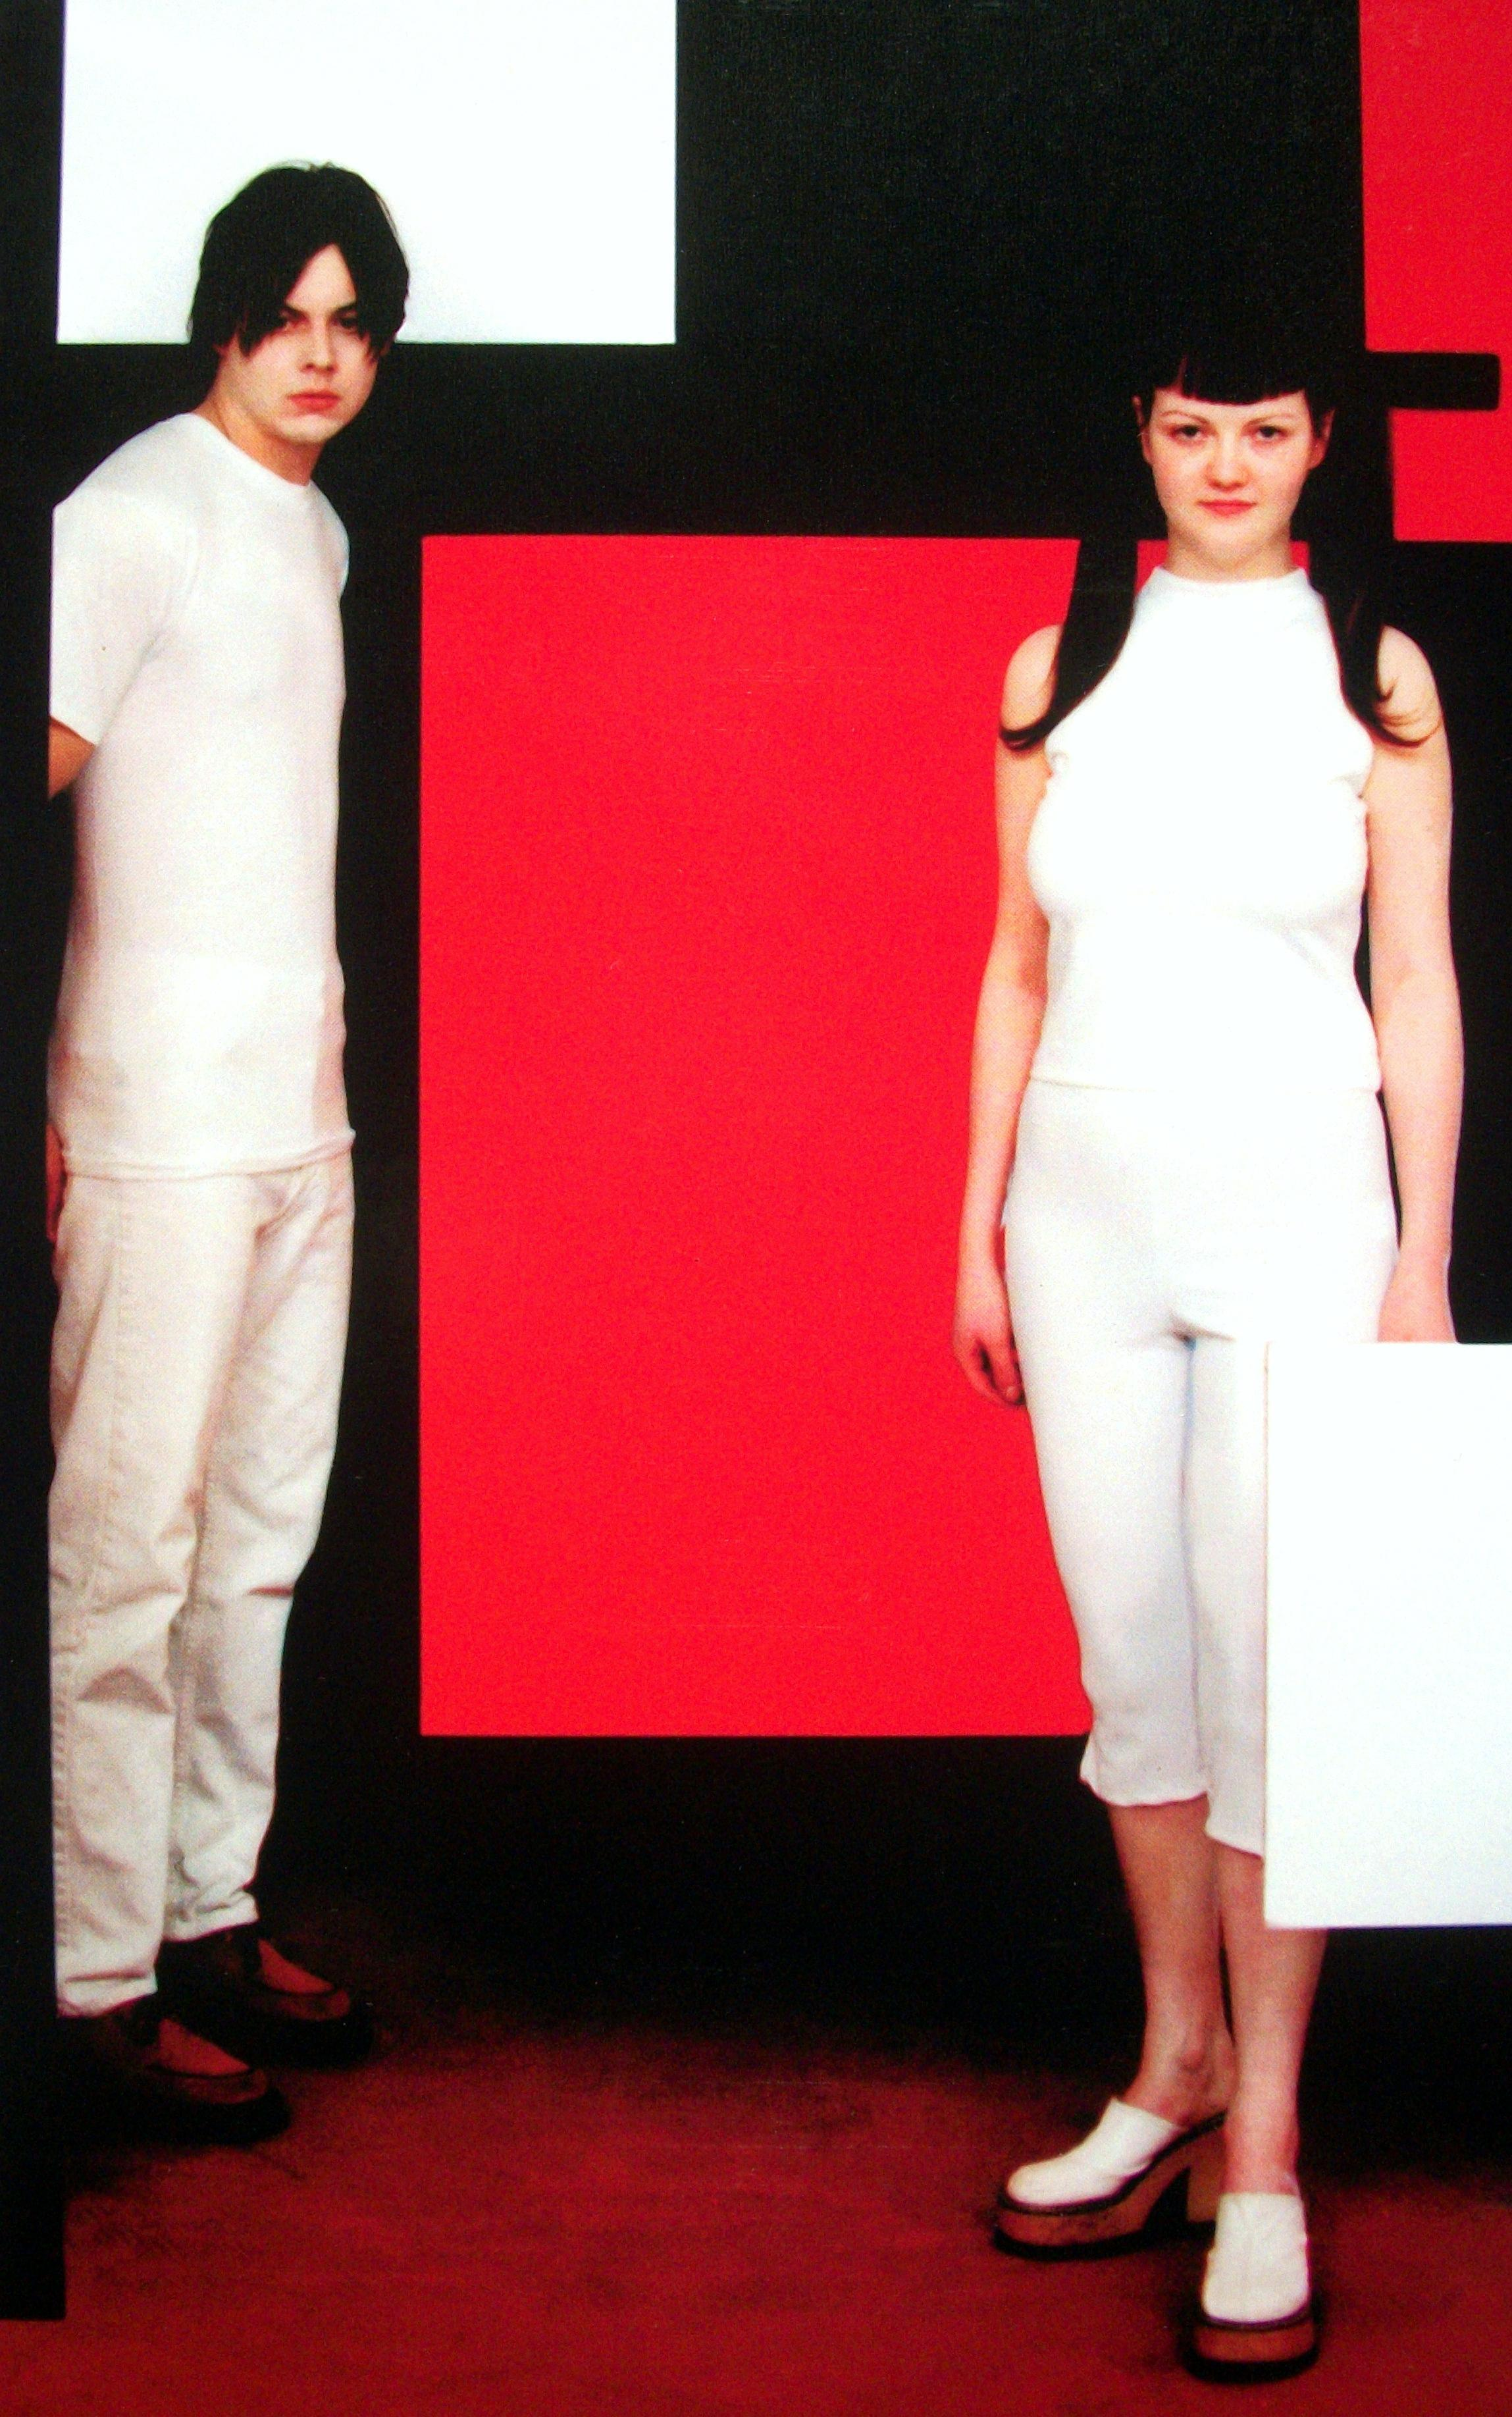 The White Stripes - I Can Learn - YouTube